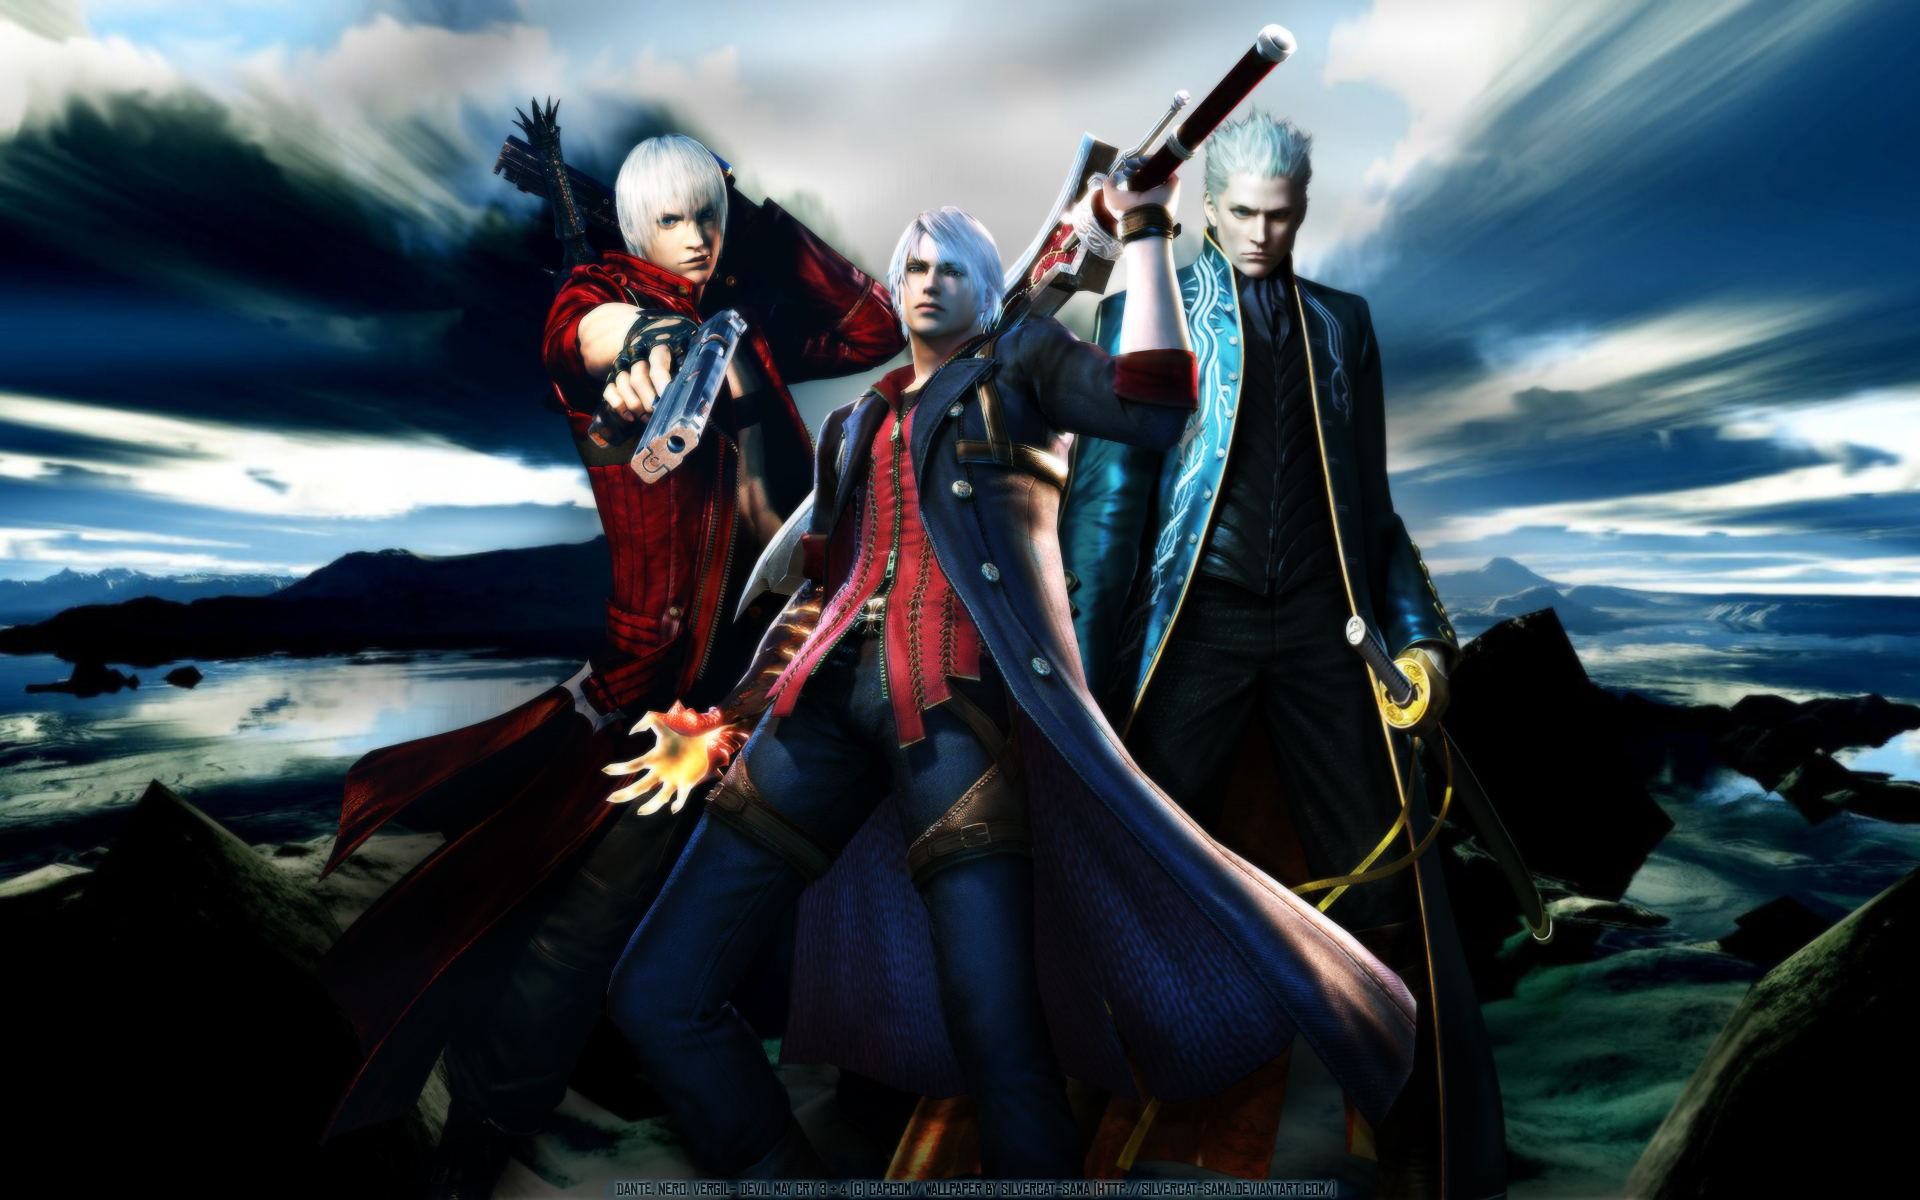 Devil May Cry Vergil Wallpaper Mobile - Cedehm com